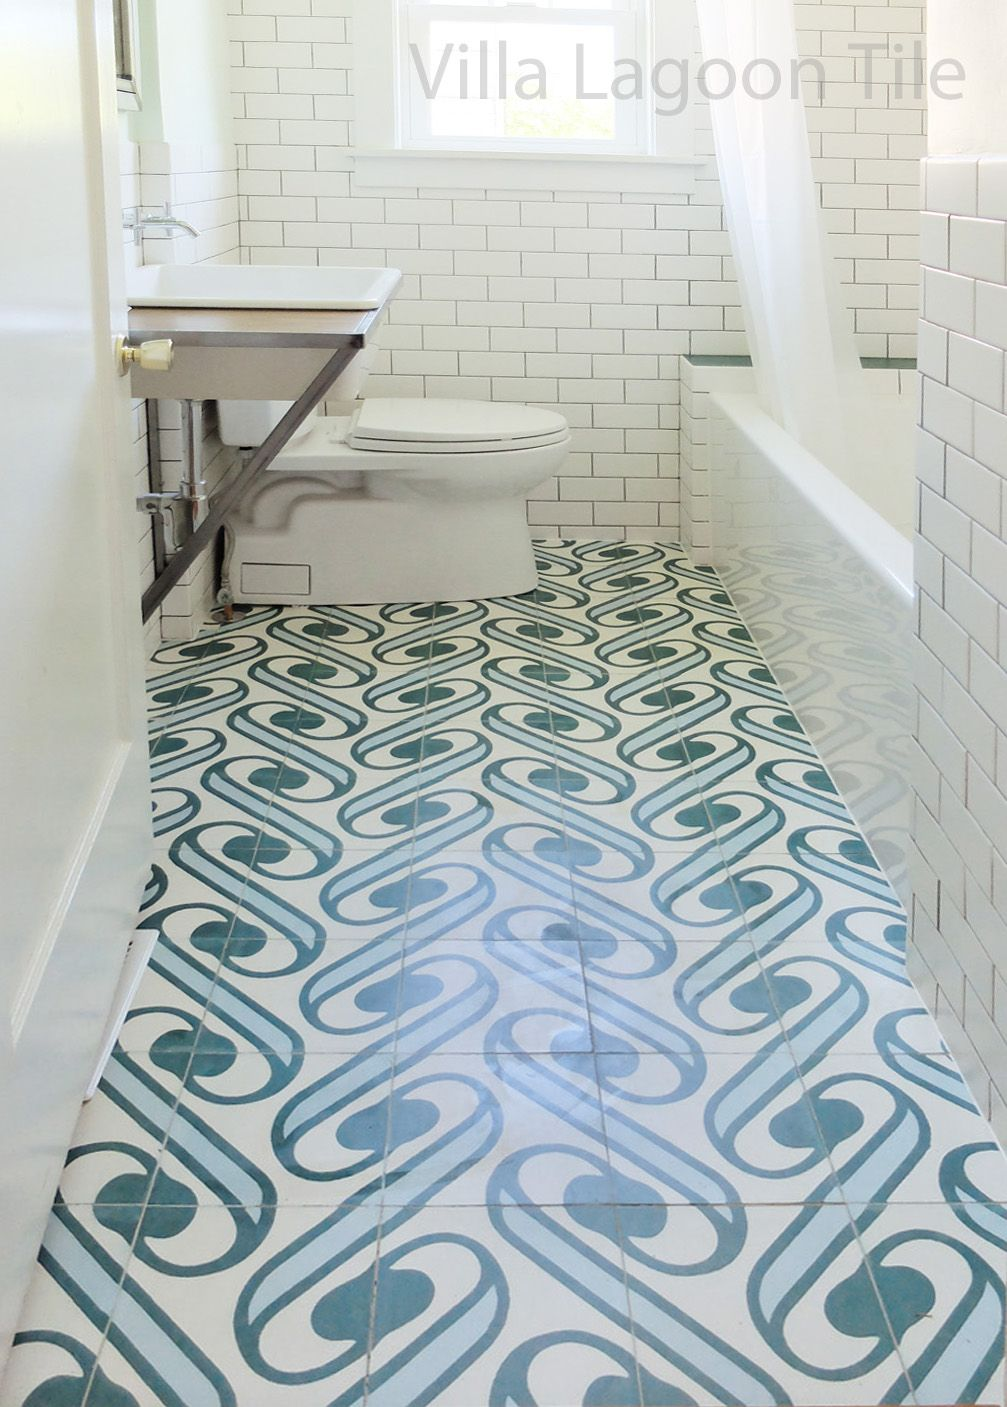 Villa Lagoon Tile S Exclusive Surf Agua Cement Tile Paired With